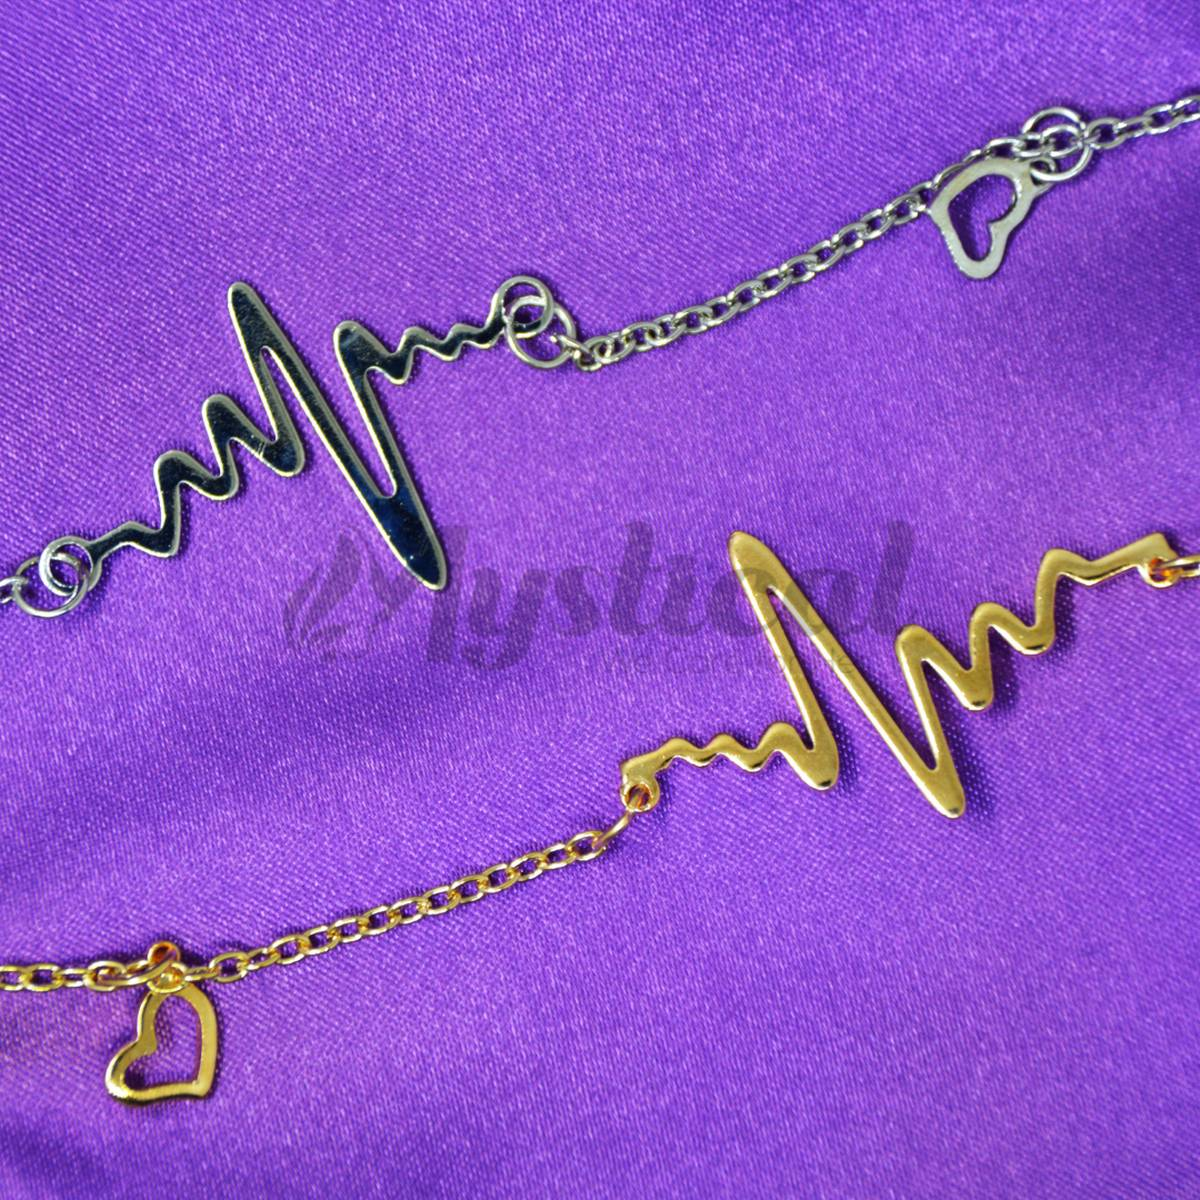 ECG Pendant Necklace for Women by Mystical - ECG Pendant Necklace for Girls - Necklace for Women / Girls